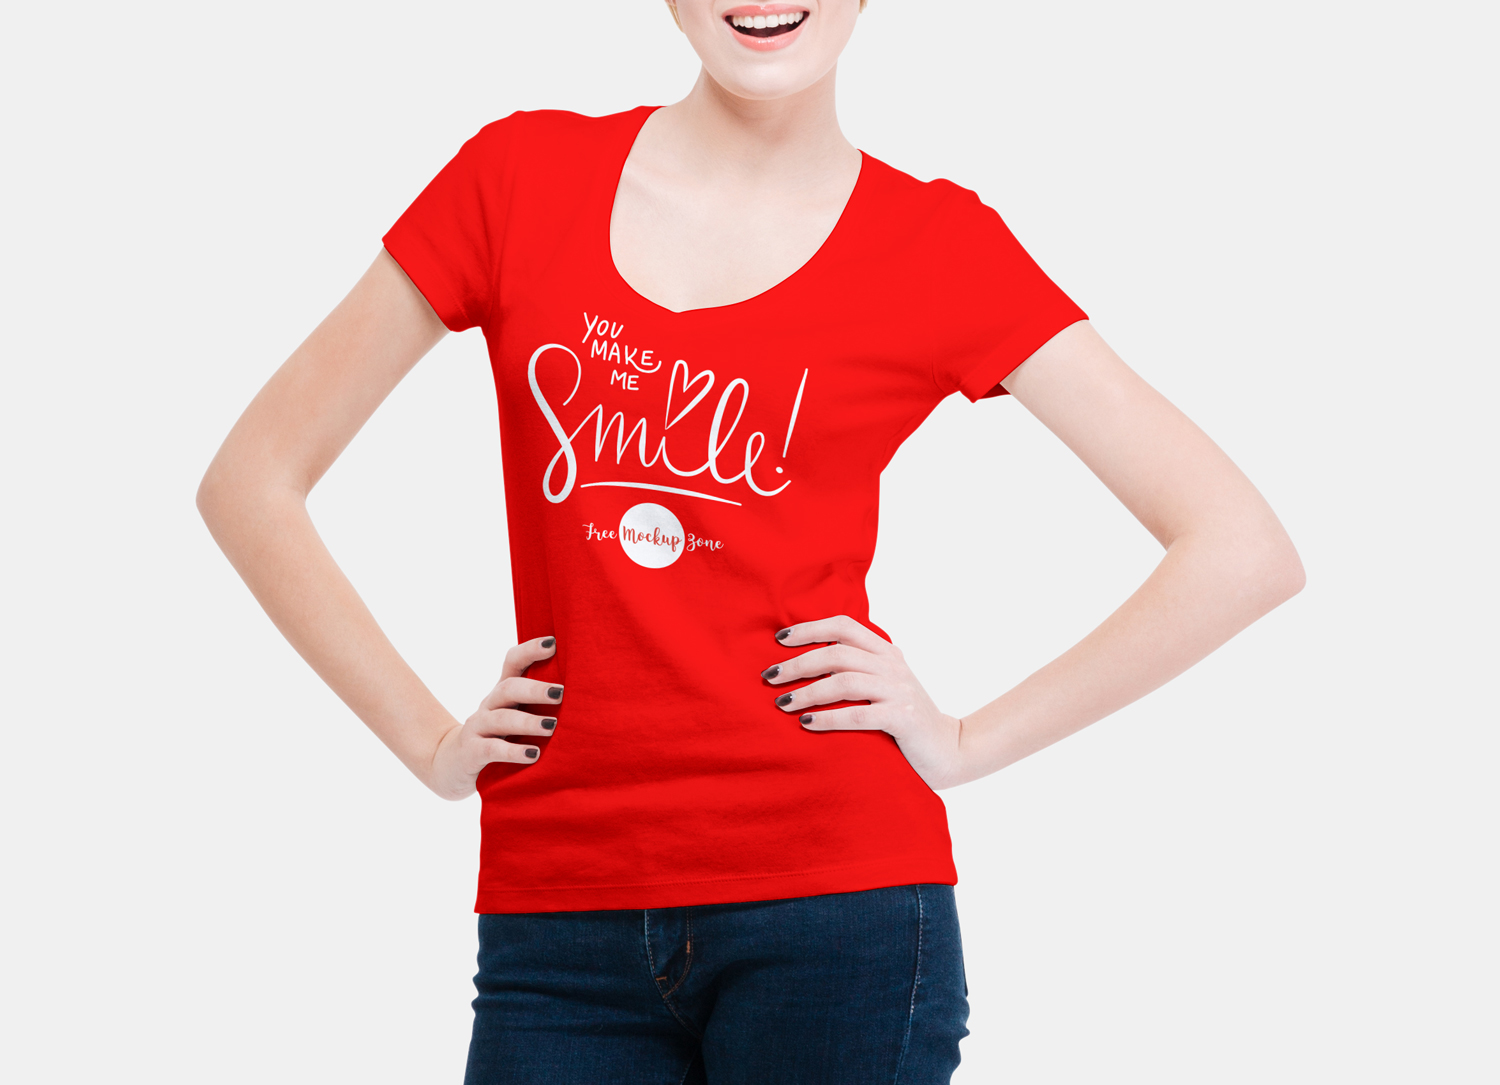 Free-Smiling-Woman-Wearing-V-Shape-T-Shirt-Mockup-PSD-2018